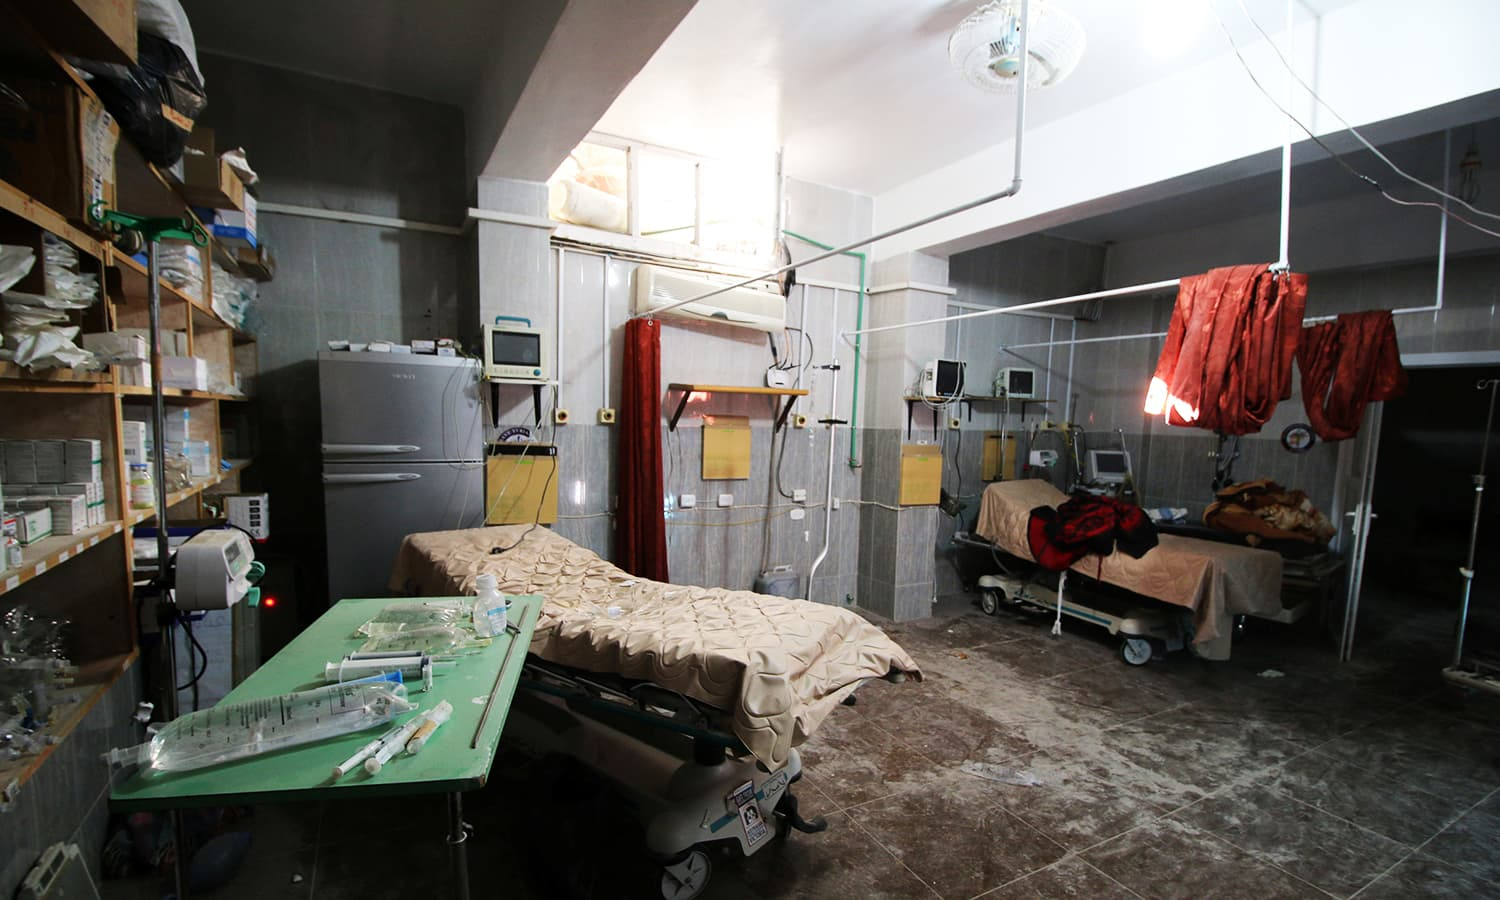 An empty room at the damaged field hospital is seen after airstrikes in a rebel held area in Aleppo, Syria on October 1, 2016. ─ Reuters